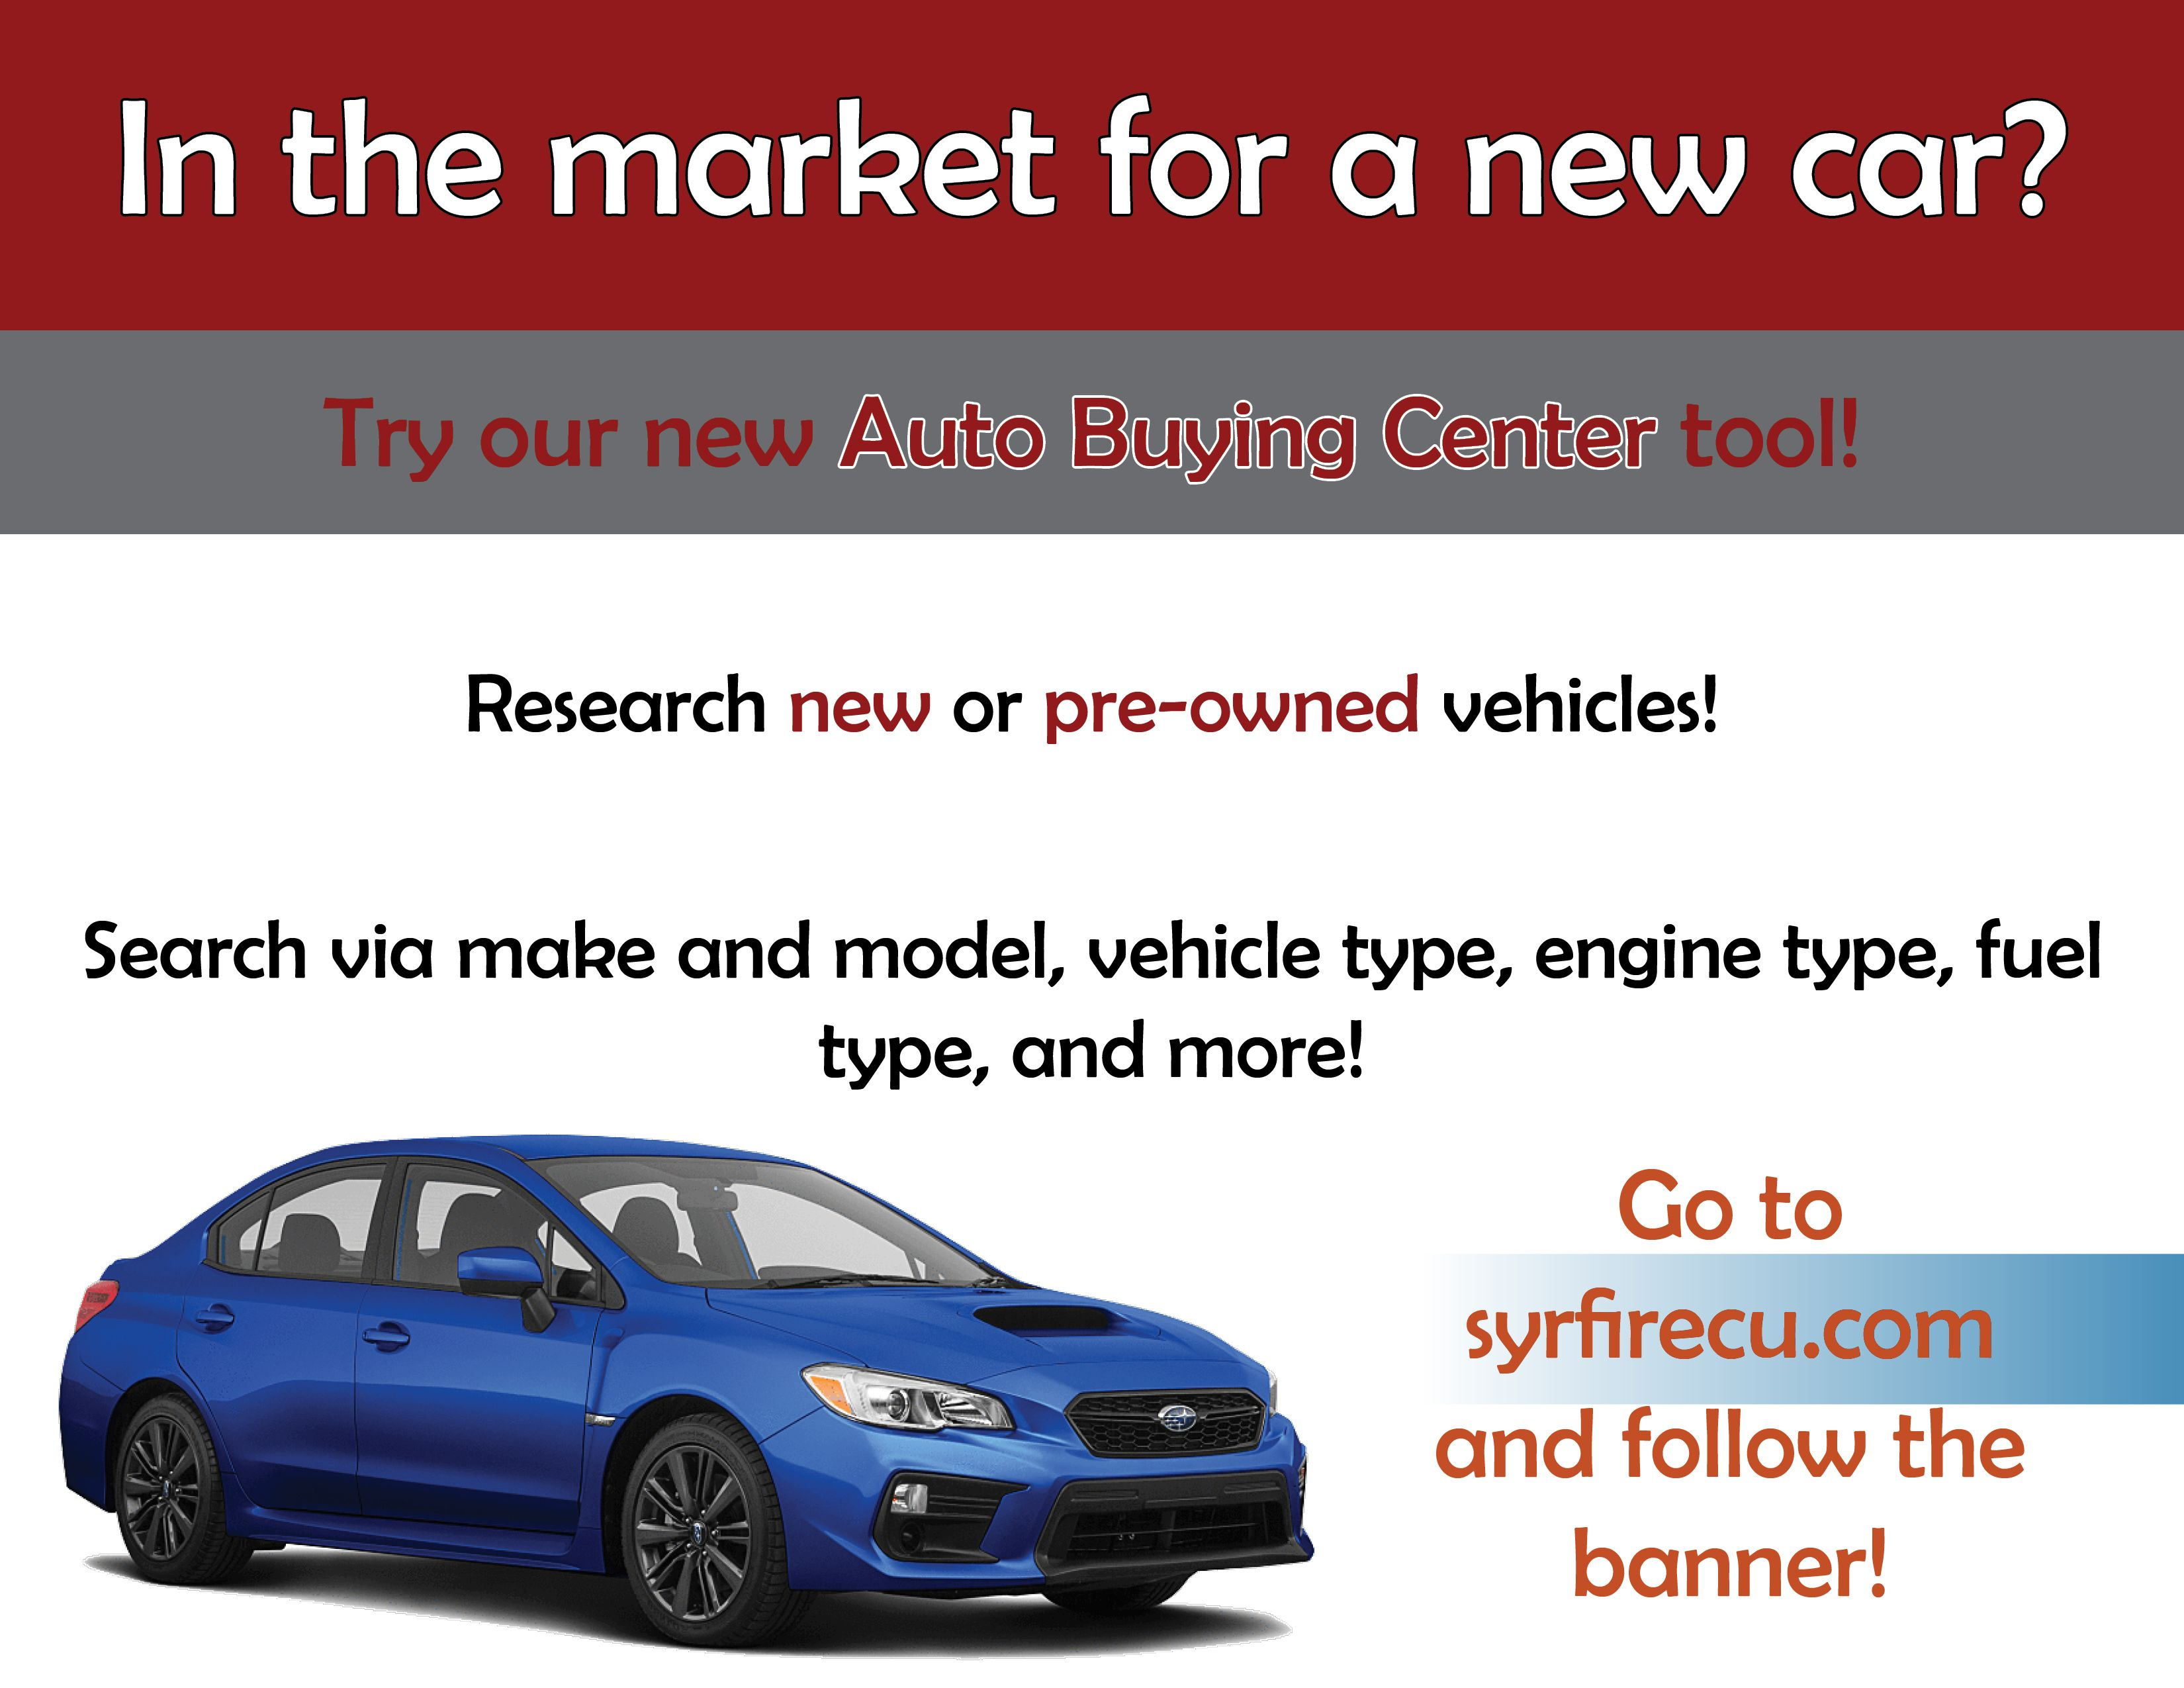 Visit our Auto Buying Center to find your next car today